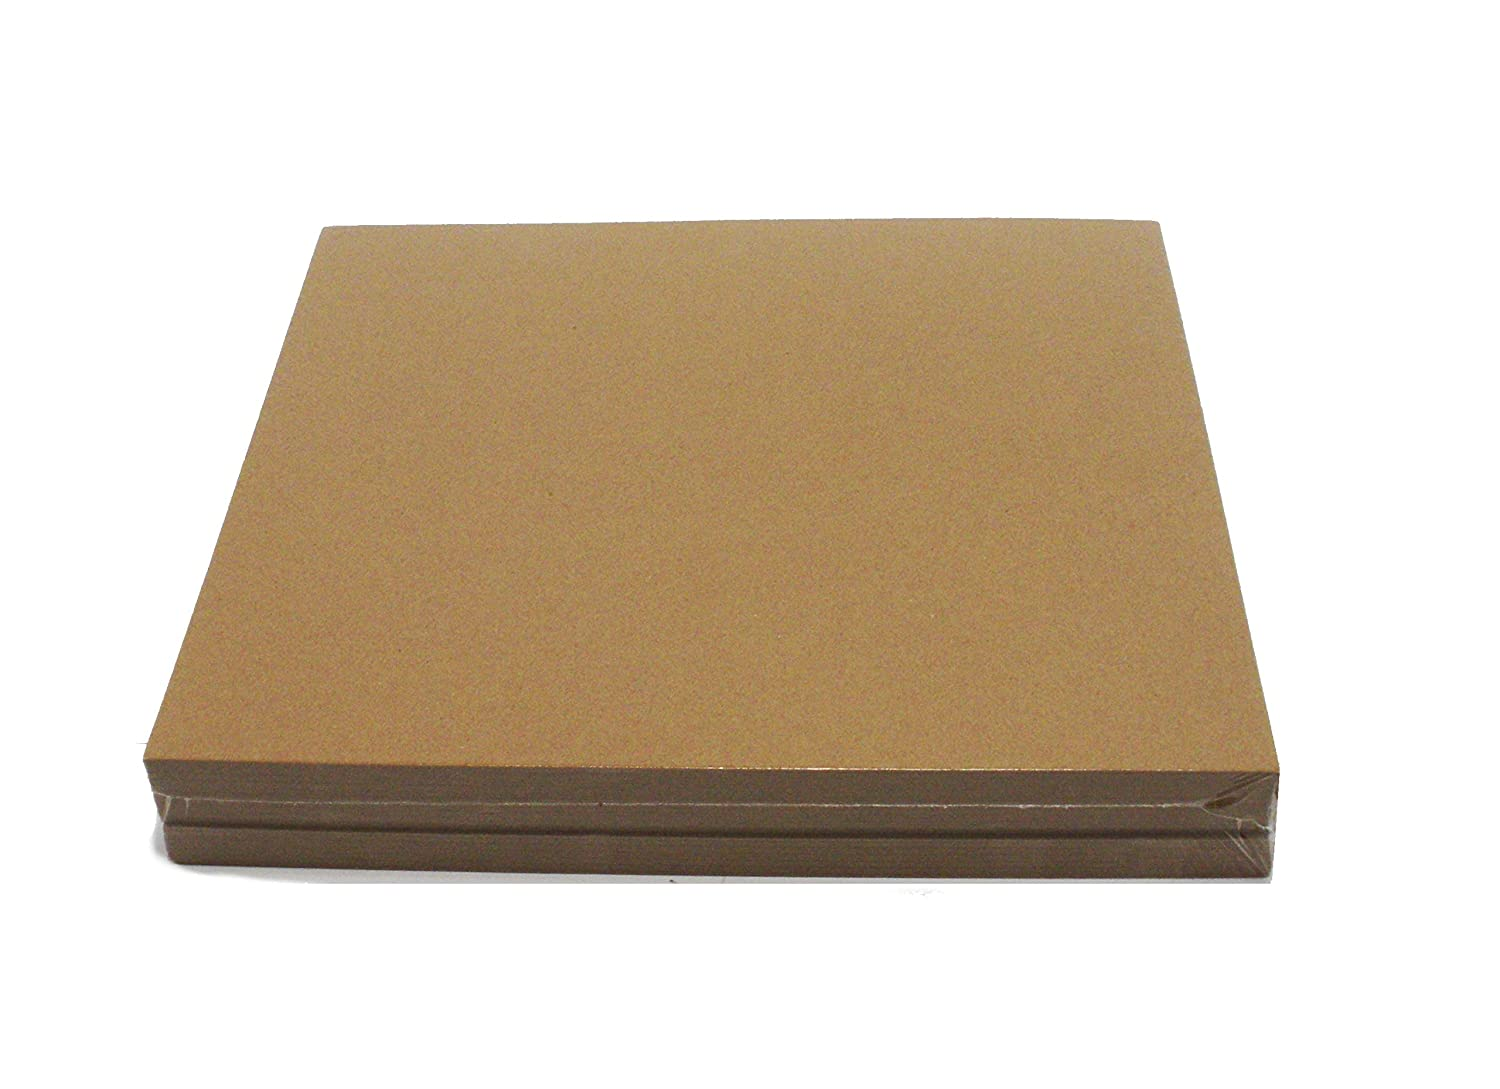 Brown Chipboard 100 Point Extra Thick 12 x 12 Inches.100 Caliper Heavy Cardboard 2.54 mm Thick Kling Magnetics 1013